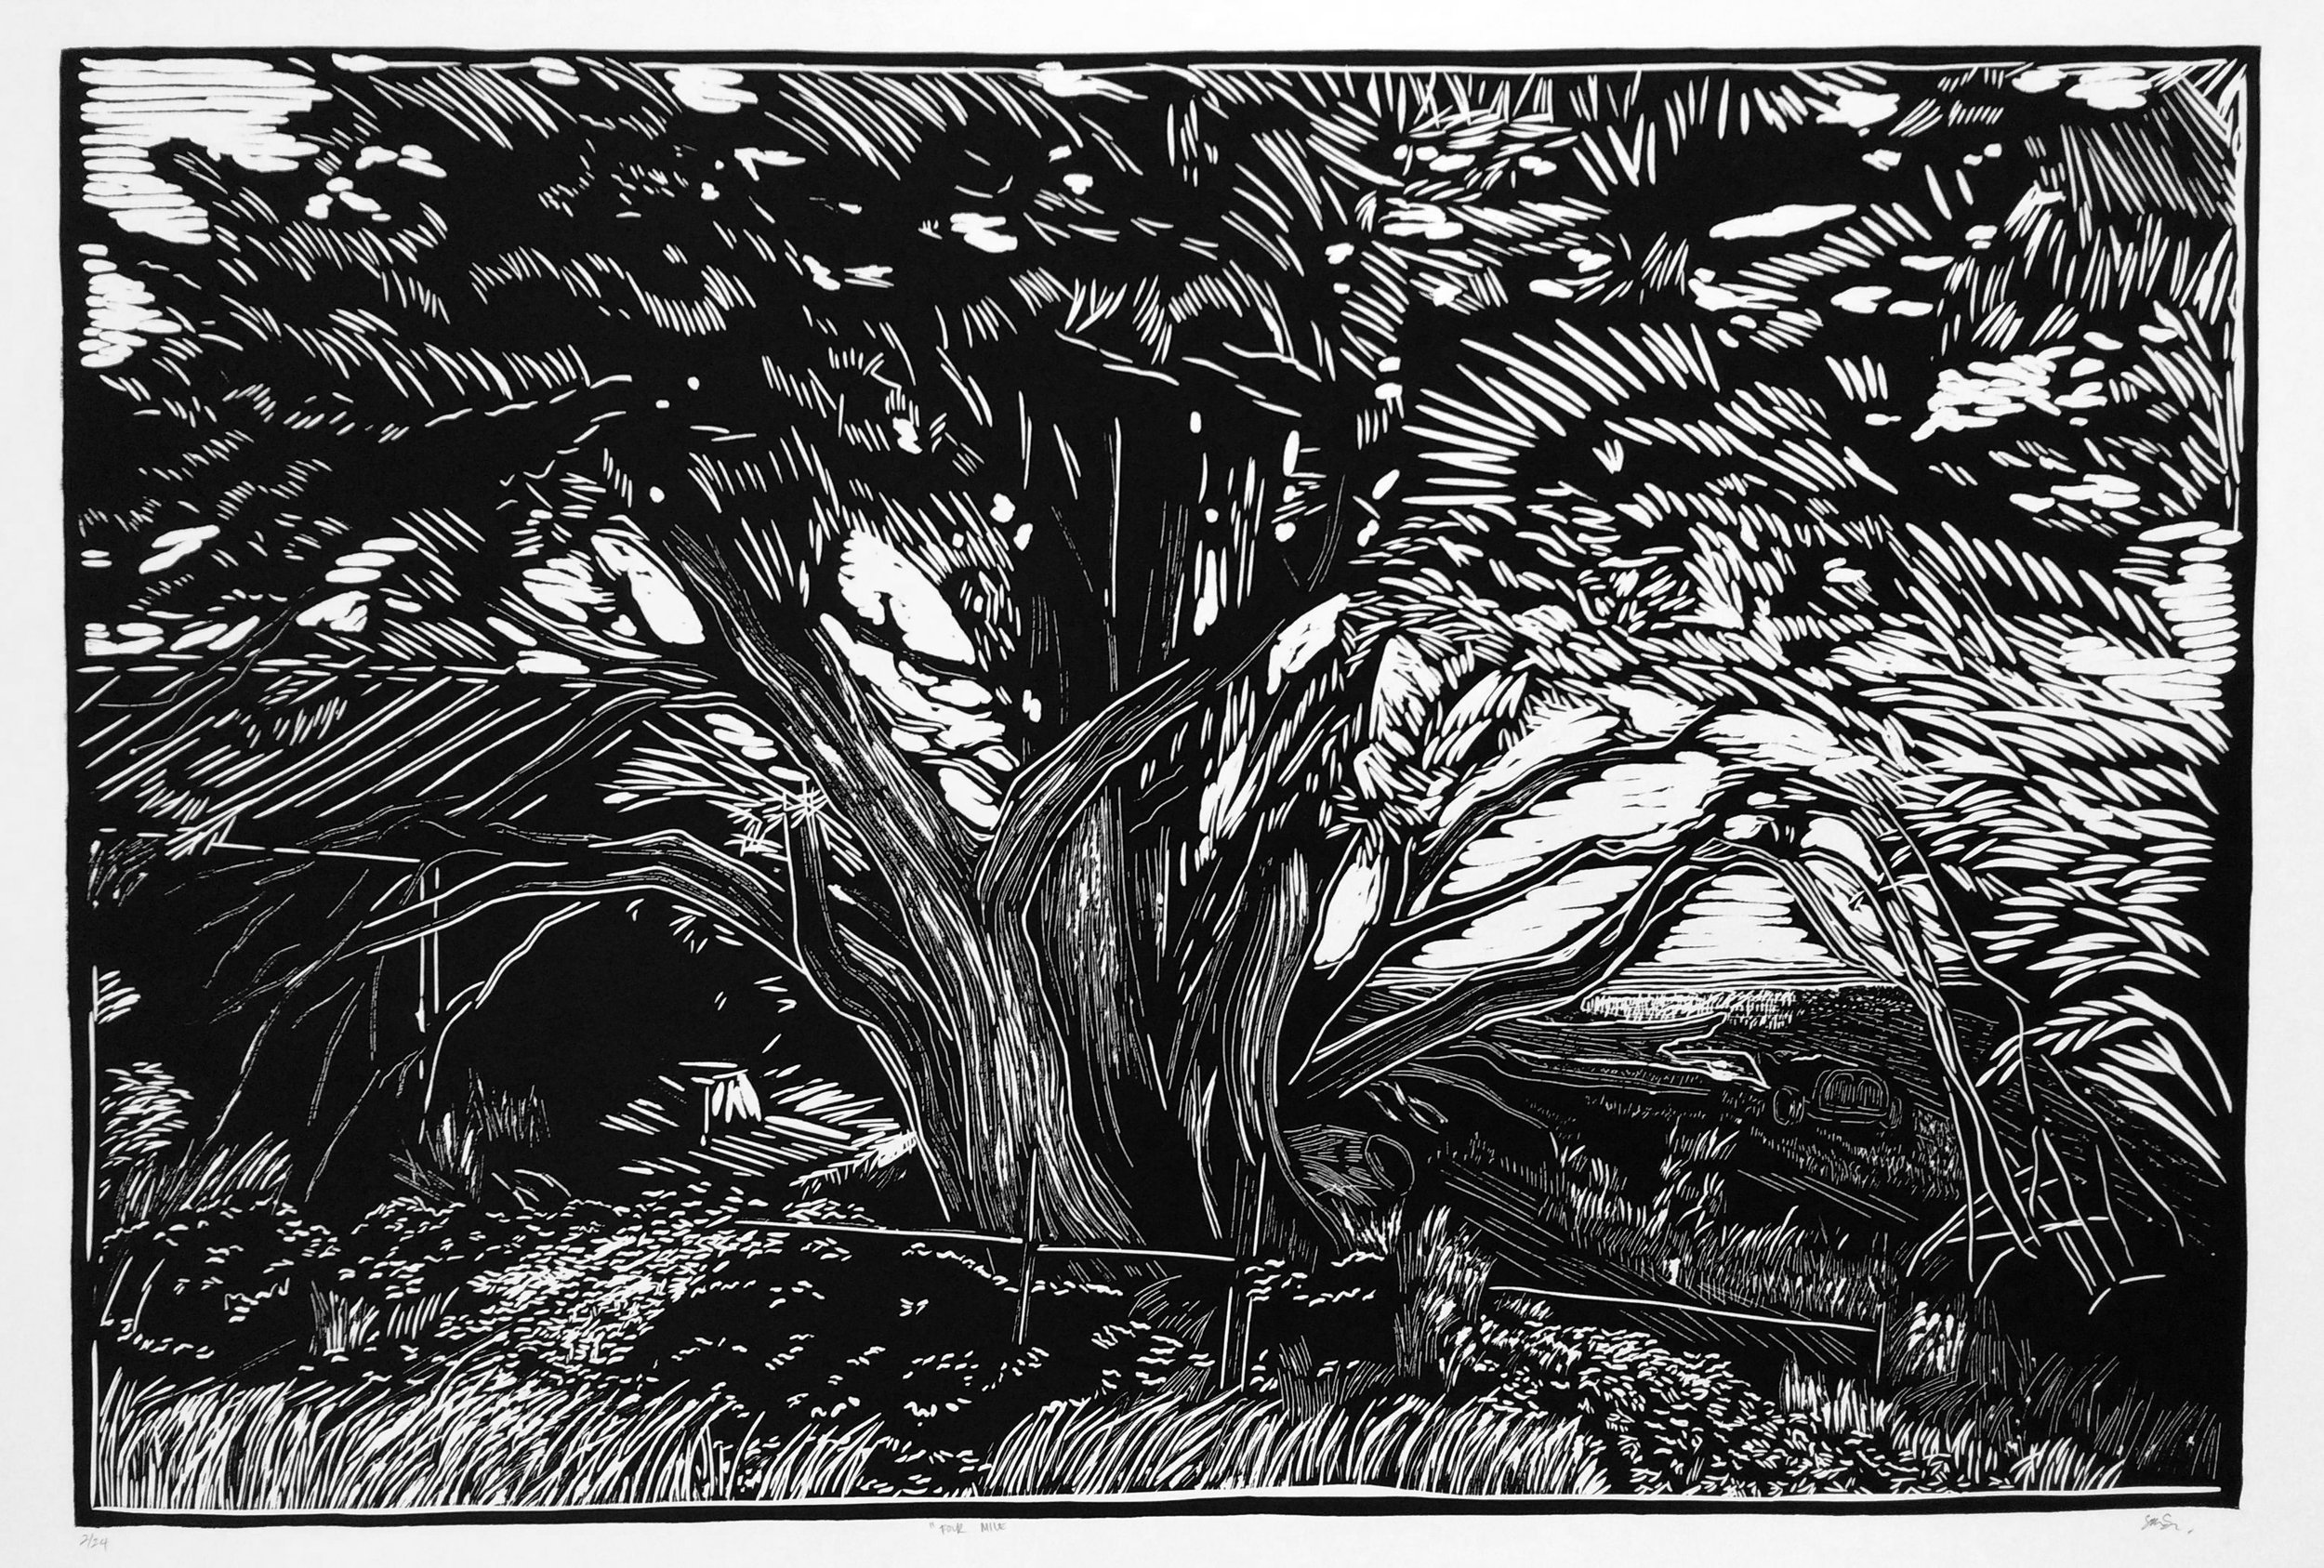 FOUR MILE   ARTIST: Sirima Sataman MEDIUM: Linocut – Ink on 100% cotton paper DIMENSIONS: 48 in x 36 in | 121,92 cm x 91,44 cm EDITION: 24 PRICE: $750 unframed | $1800 framed